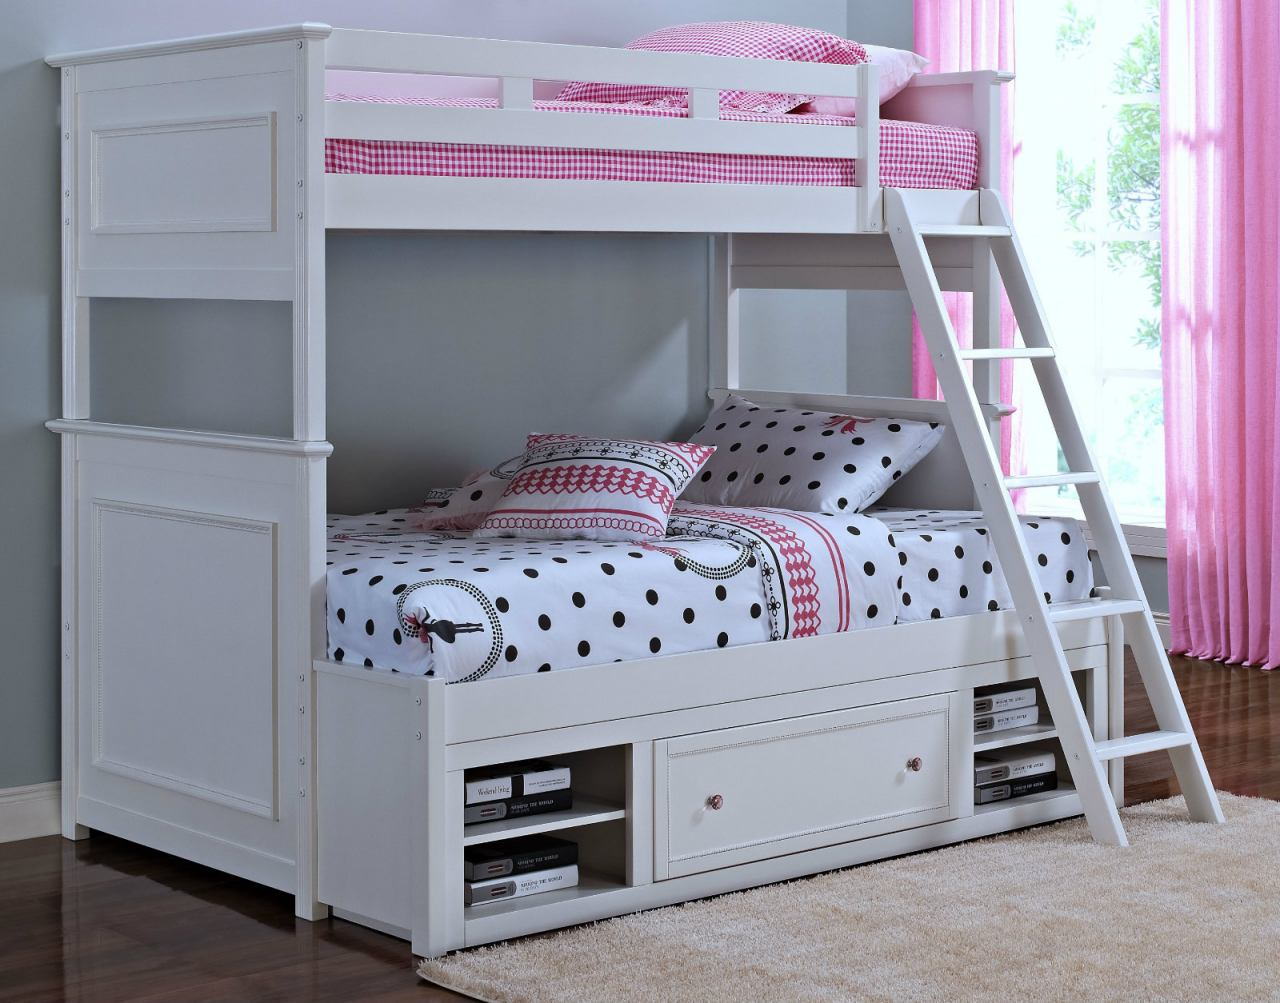 New Classic Megan Bunk Bedroom Set in White